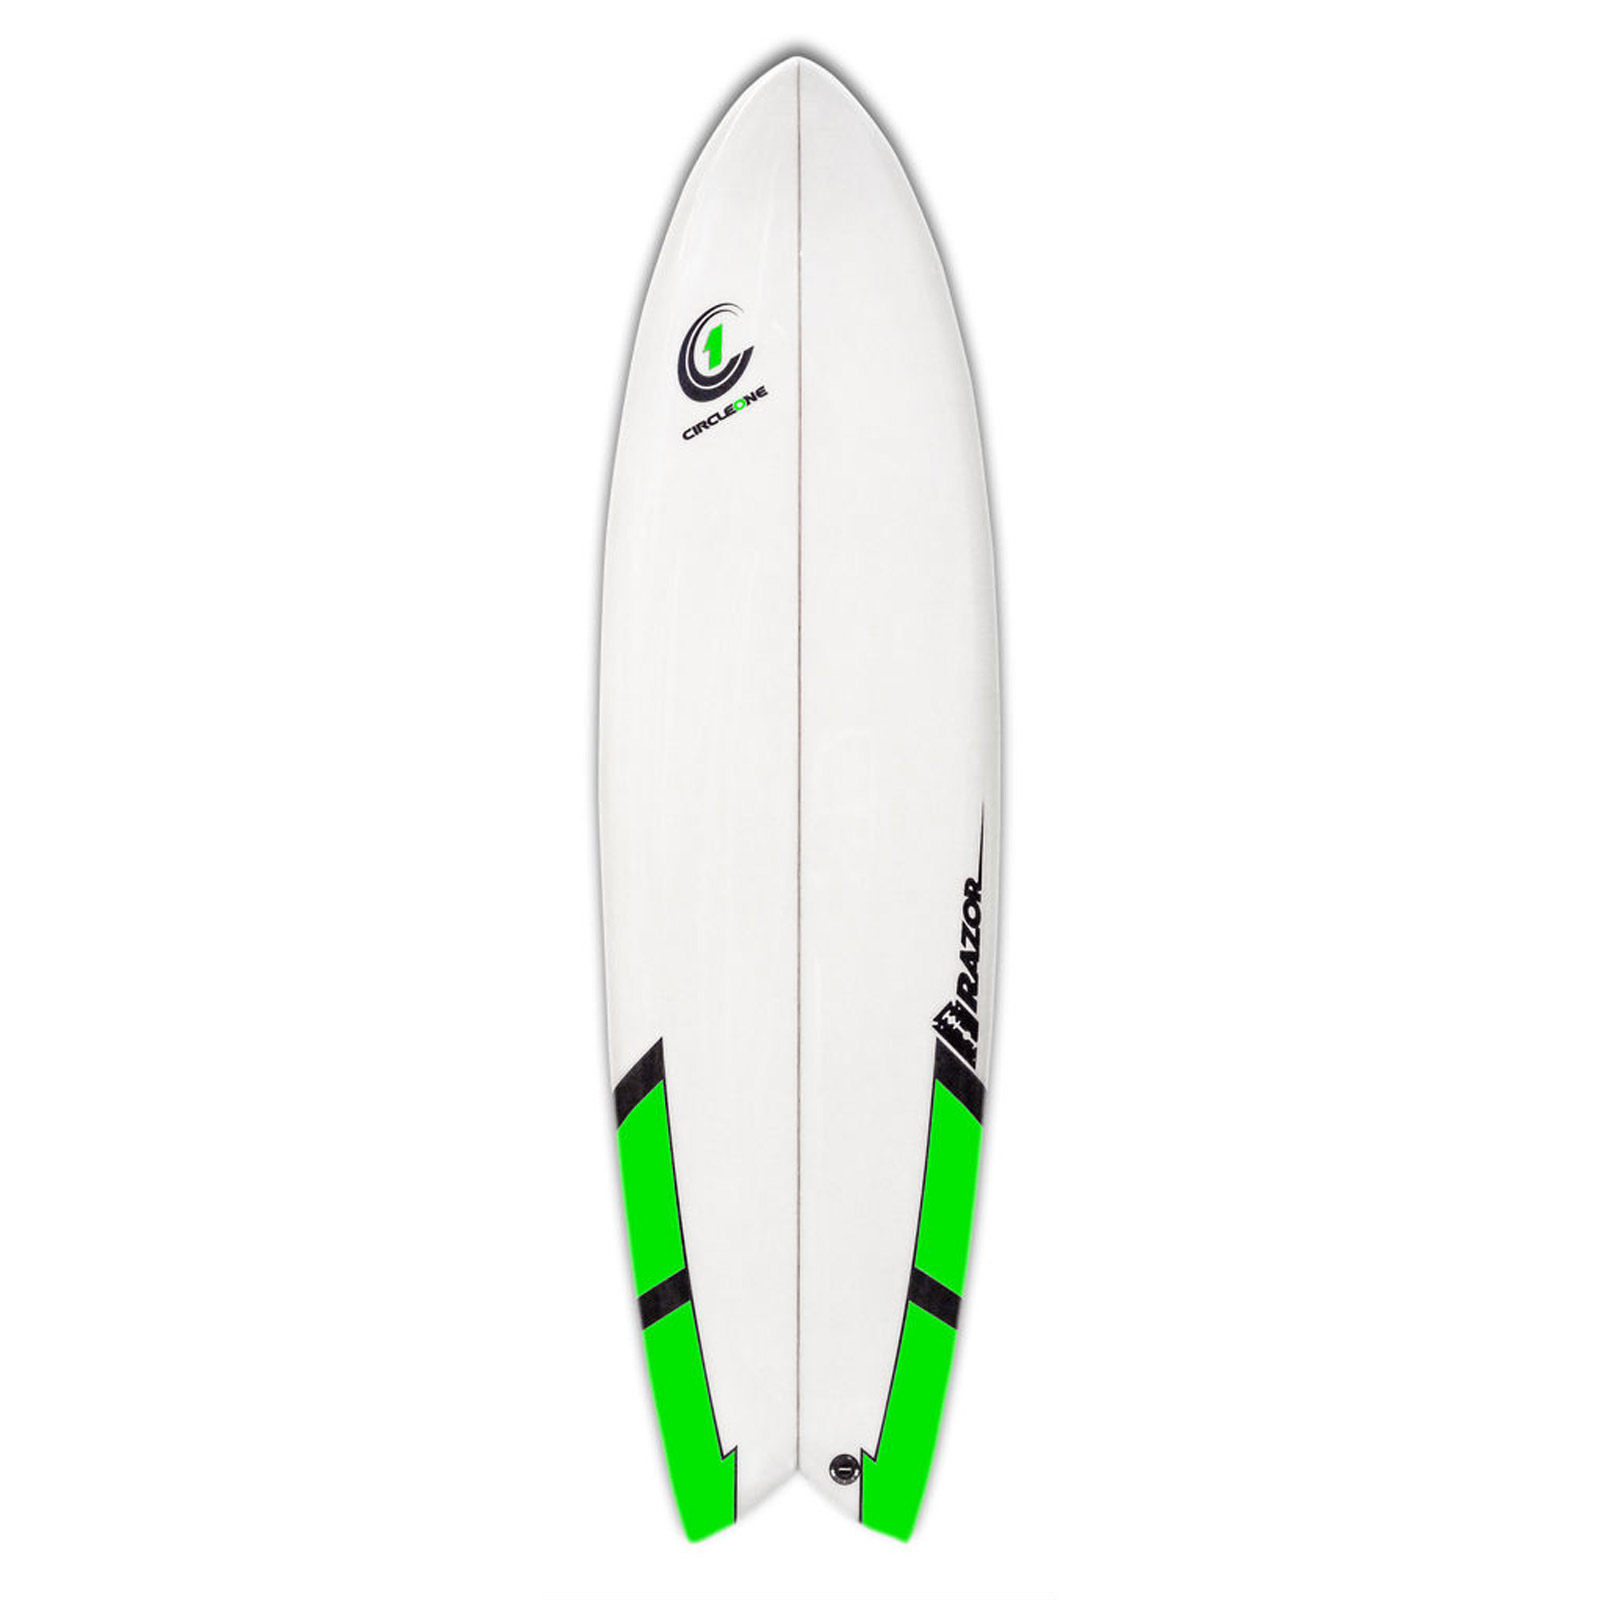 6ft 6inch Razor Surfboard - Fish Tail Shortboard - Gloss Finish